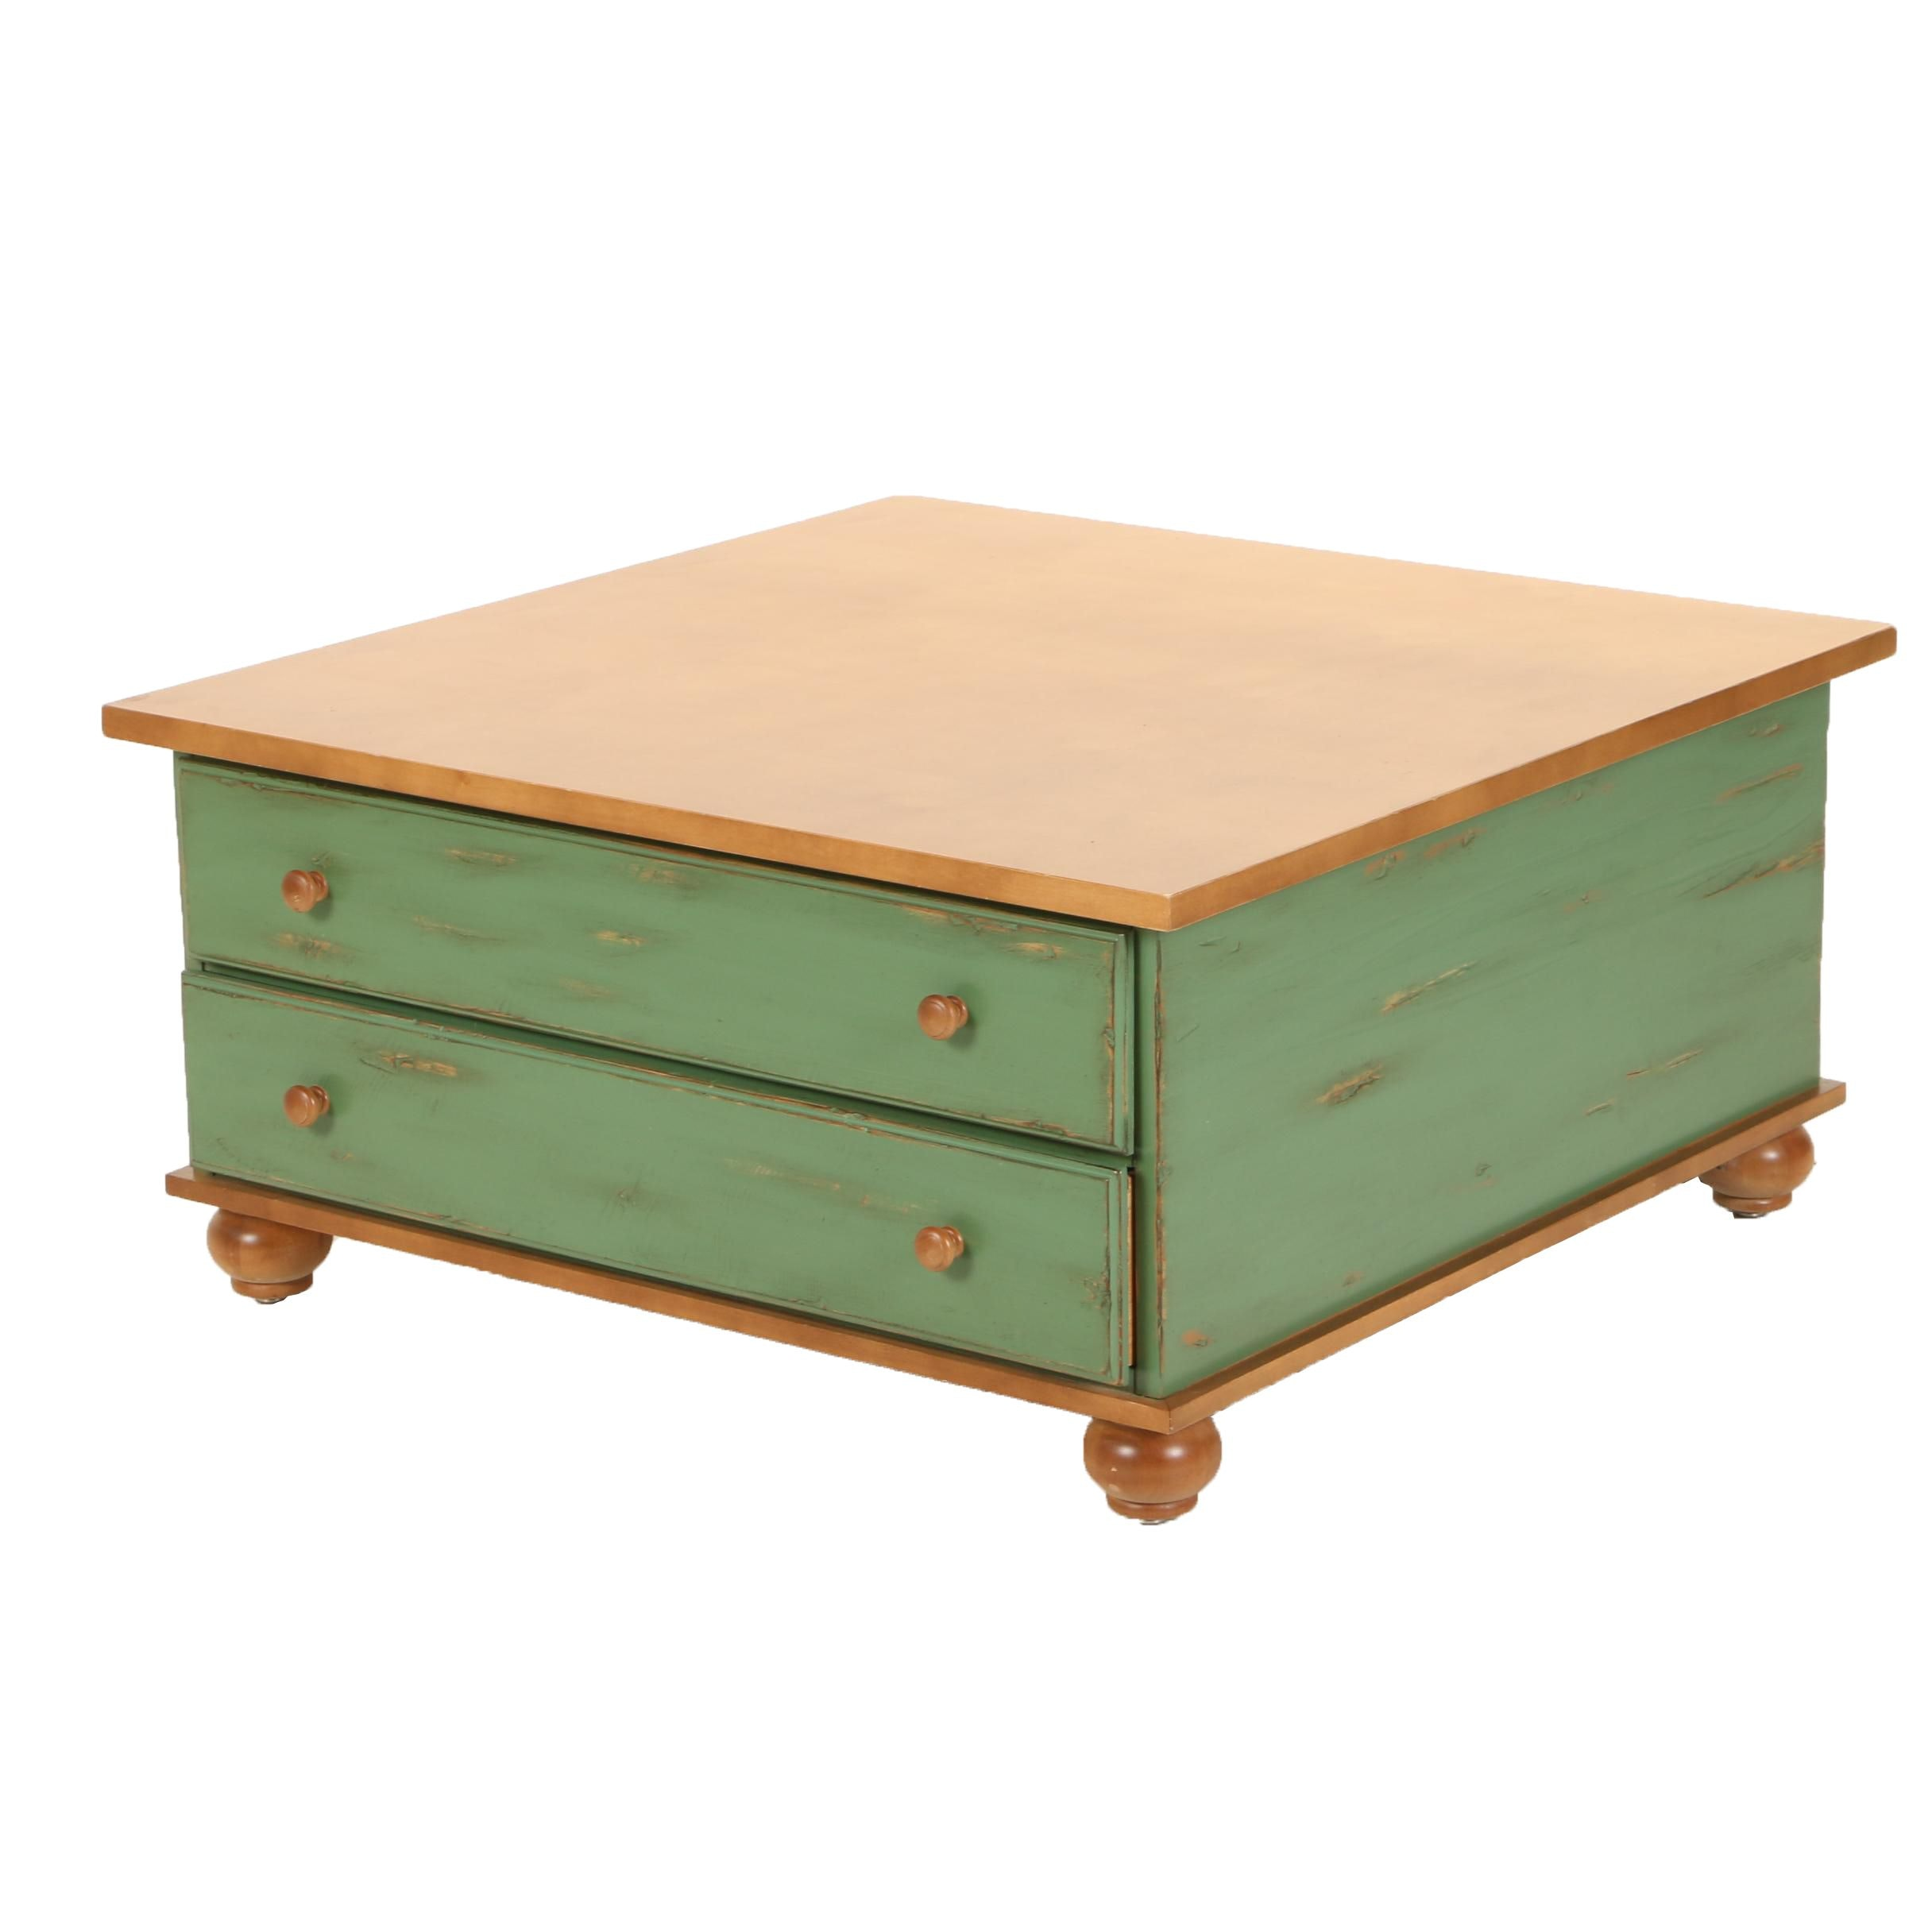 Contemporary Green-Painted Maple Coffee Table with Two Drawers by Lane